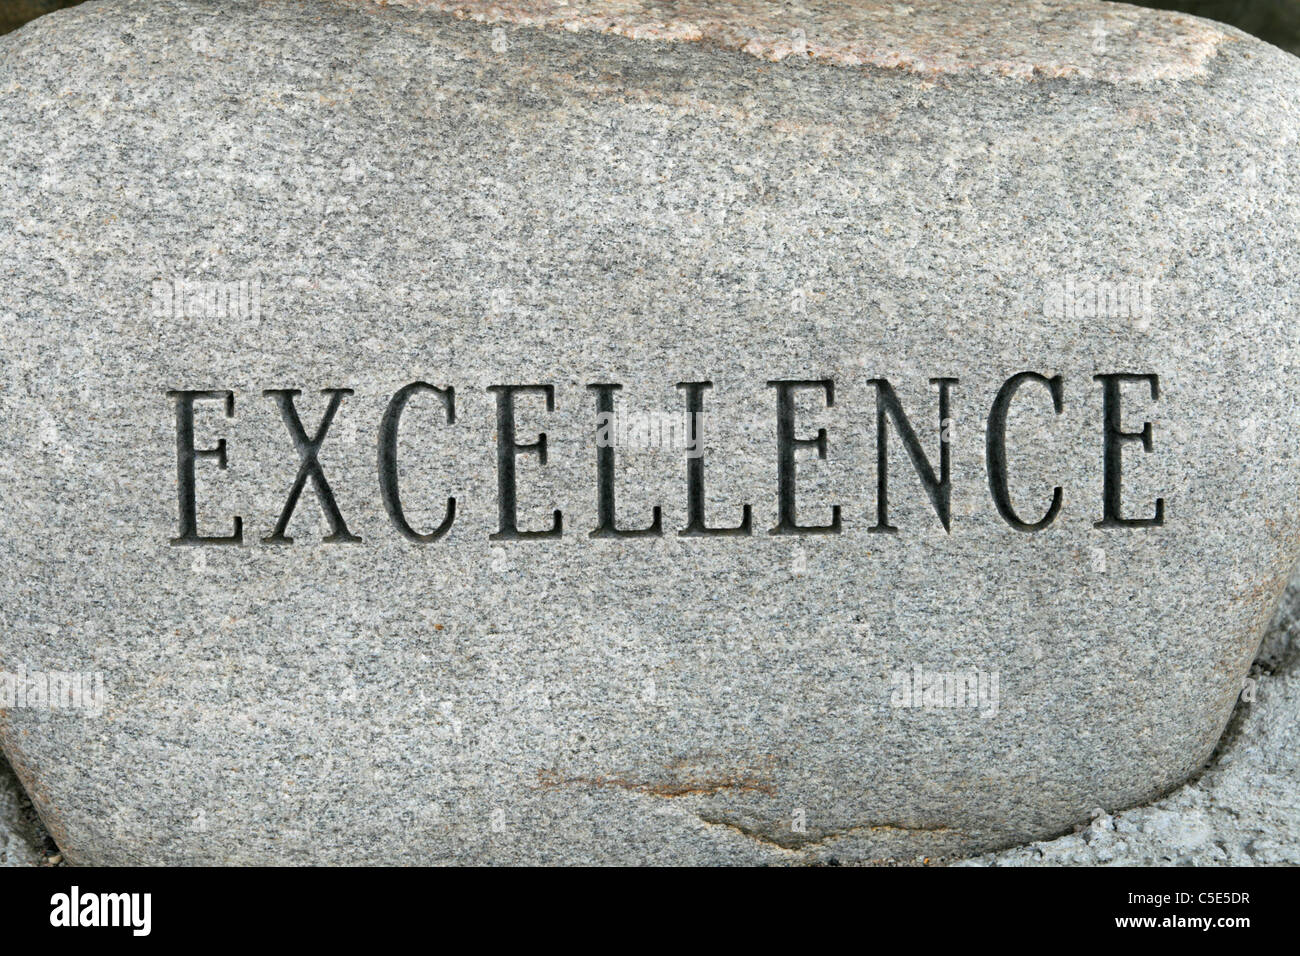 the word excellence carved onto a granite cobble stone - Stock Image